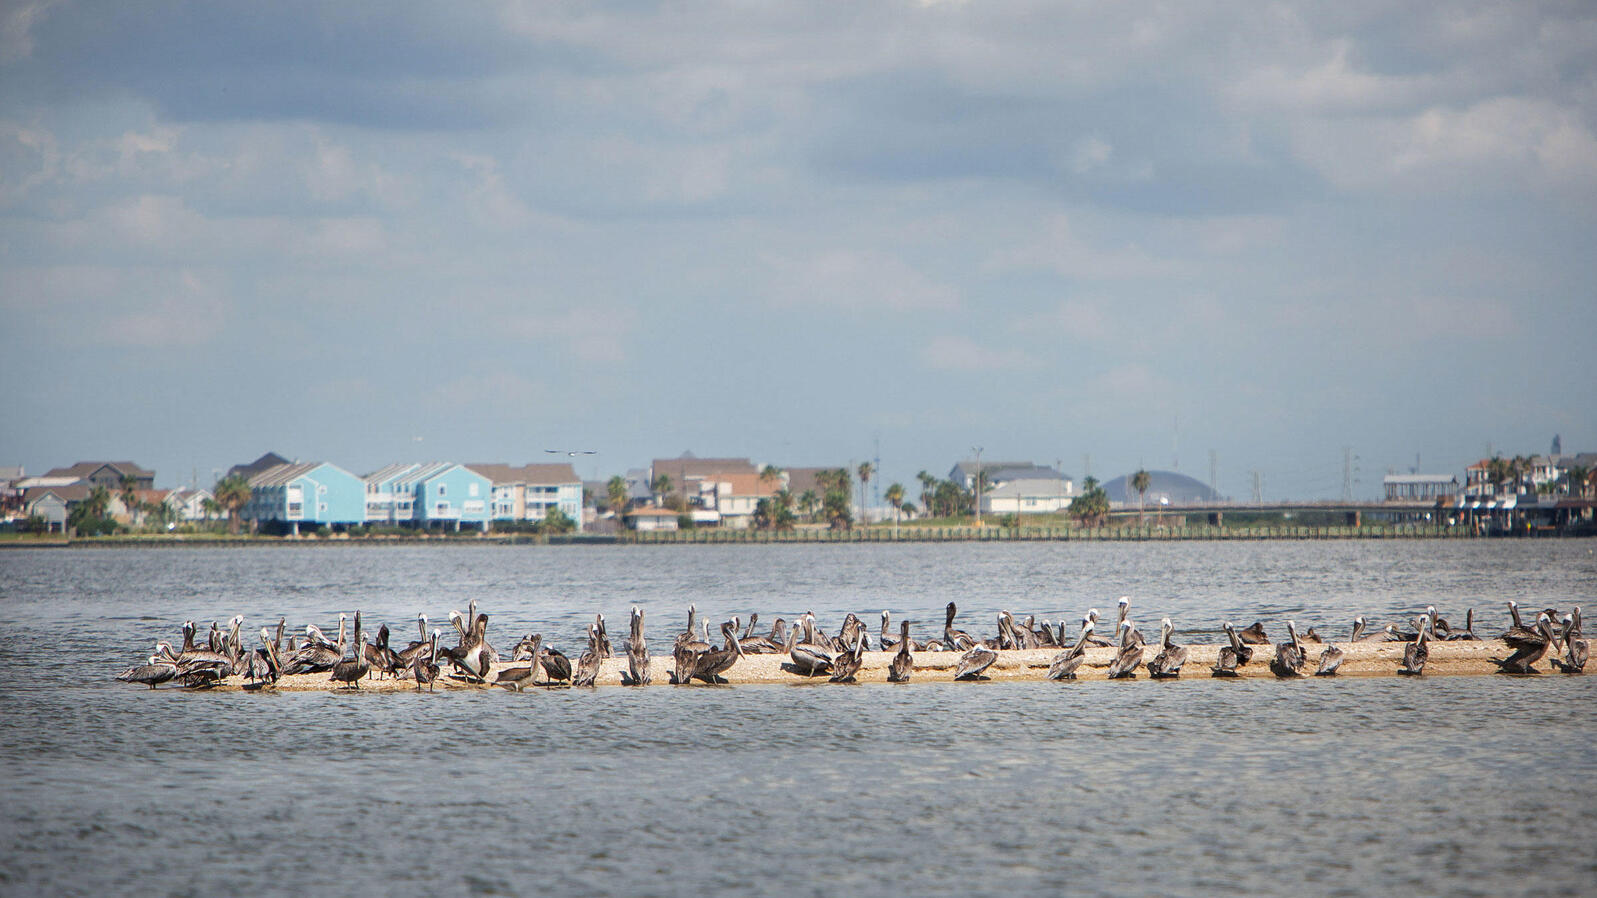 Brown pelicans cluster on a small sand bar island in Galveston Bay, Texas.